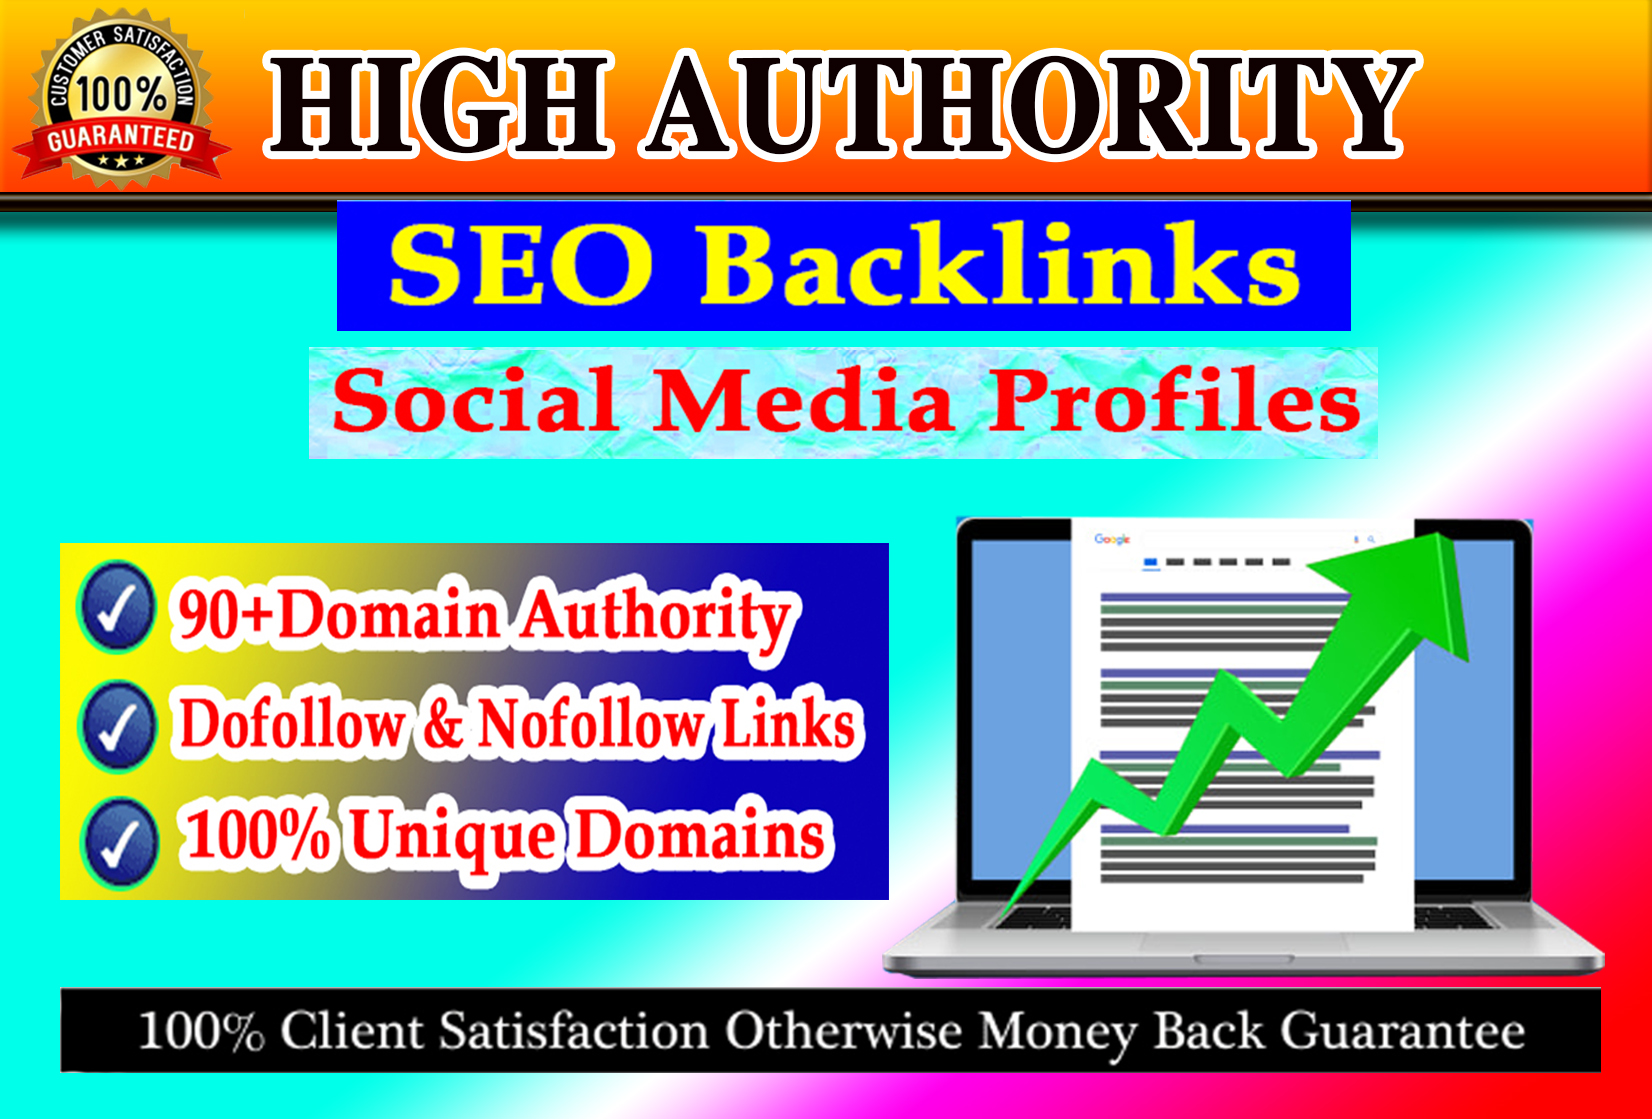 I will manually create 50 high authority seo backlinks from top brands